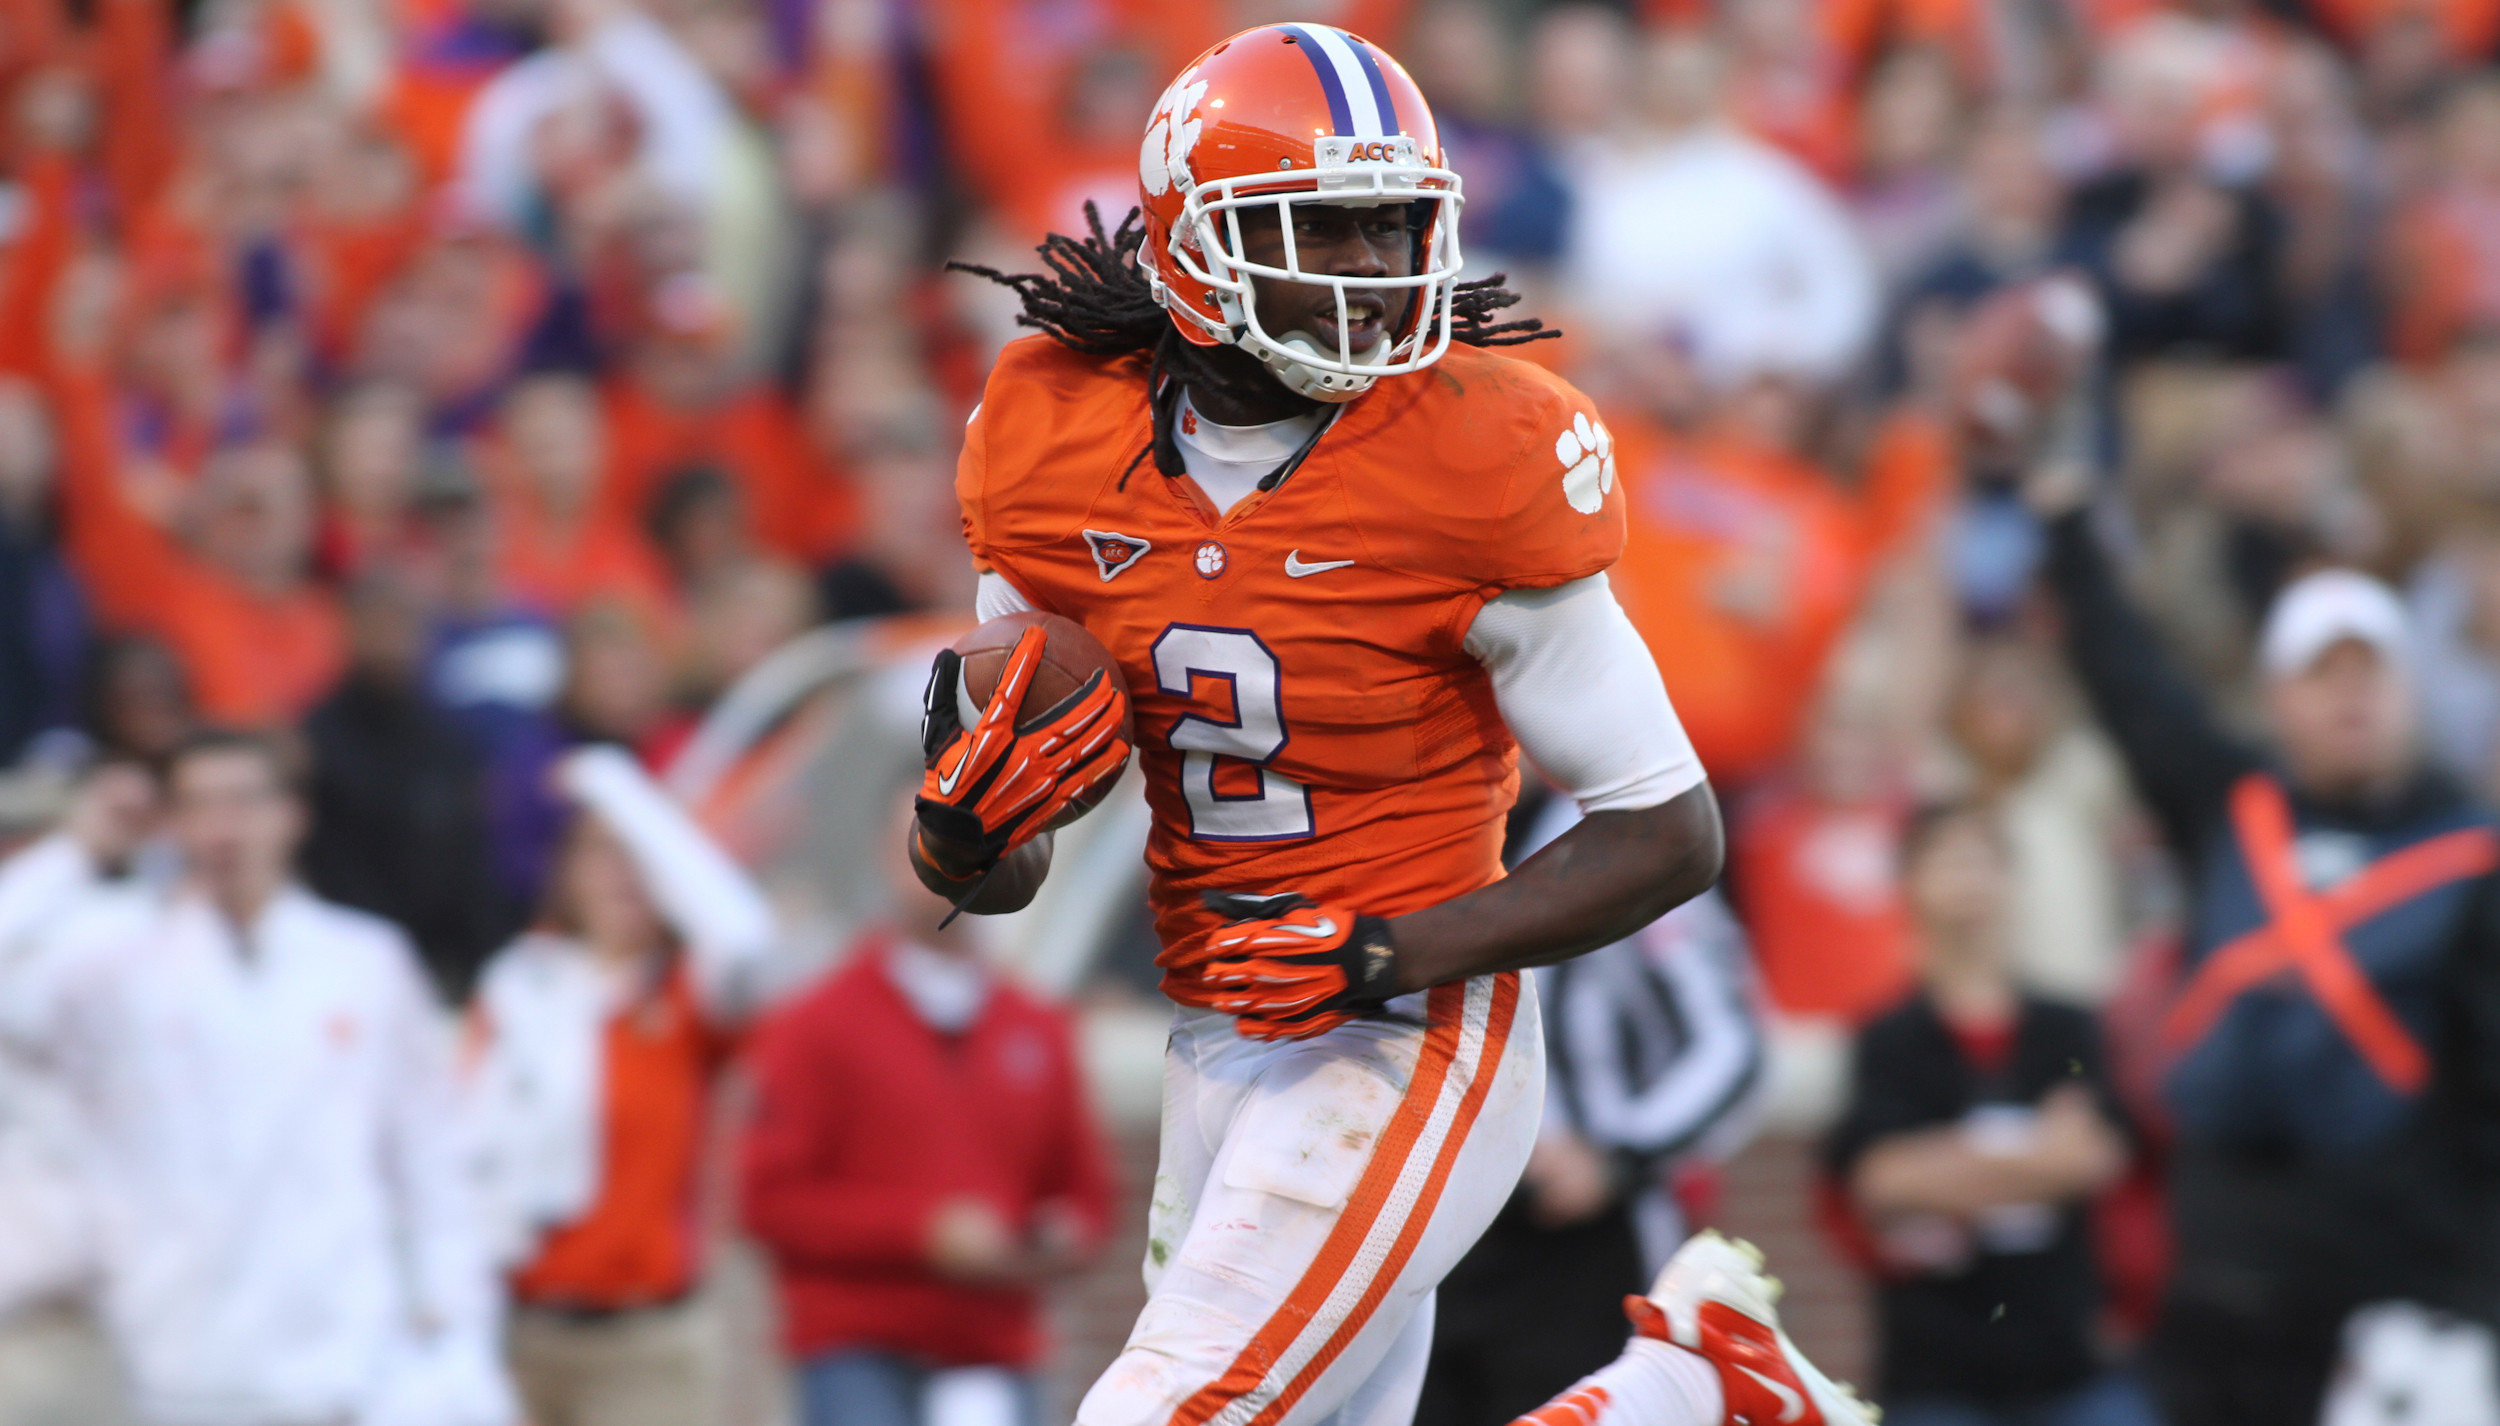 Clemson Football Bowl Practice Report: December 27